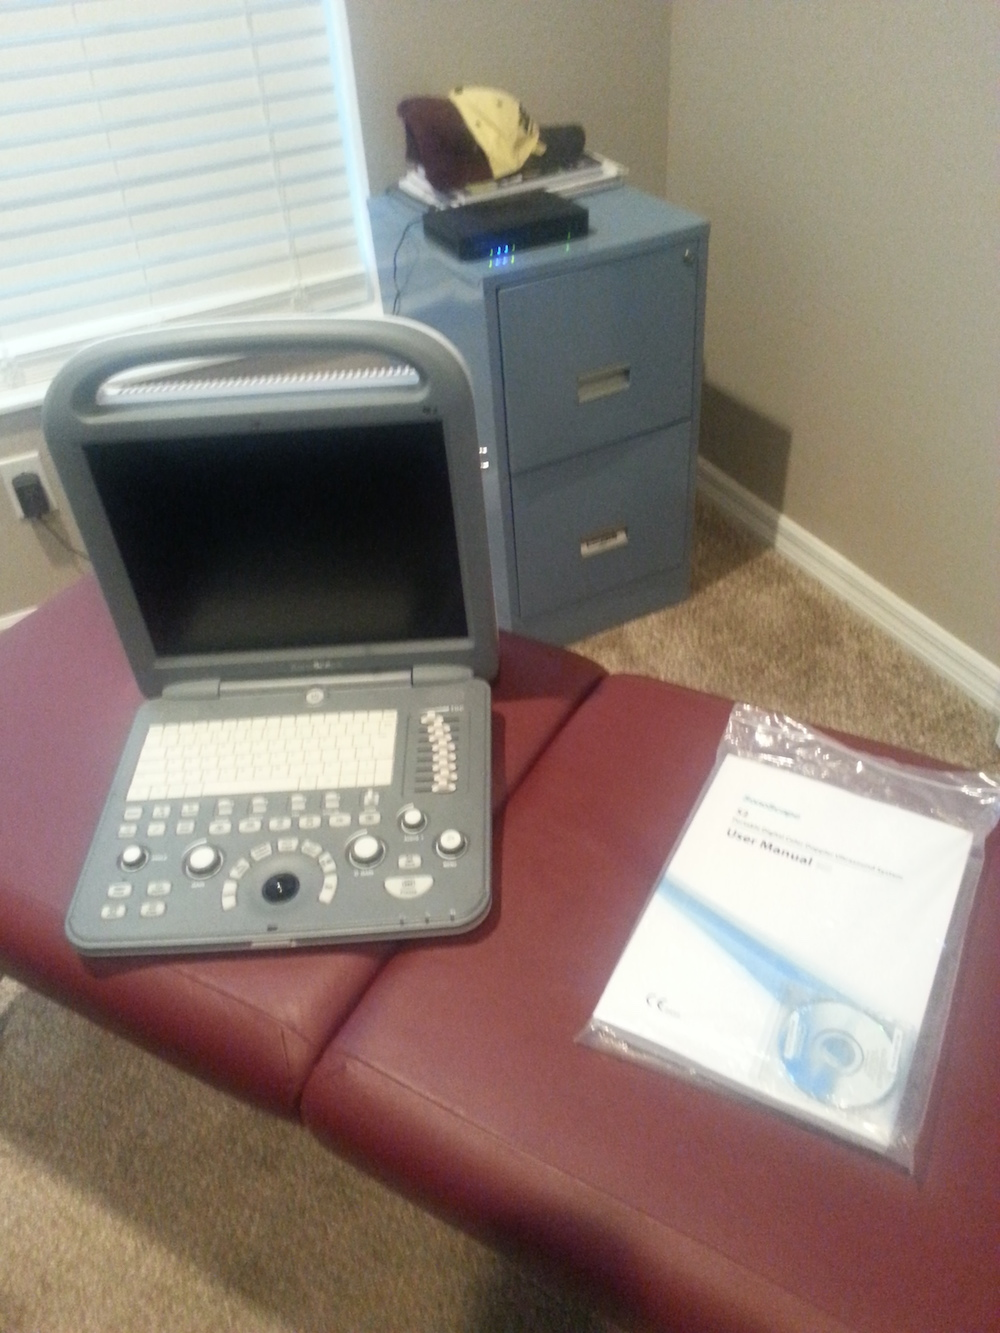 SONOSCAPE S6 DIAGNOSTIC ULTRASOUND W/ COLOR DOPPLER